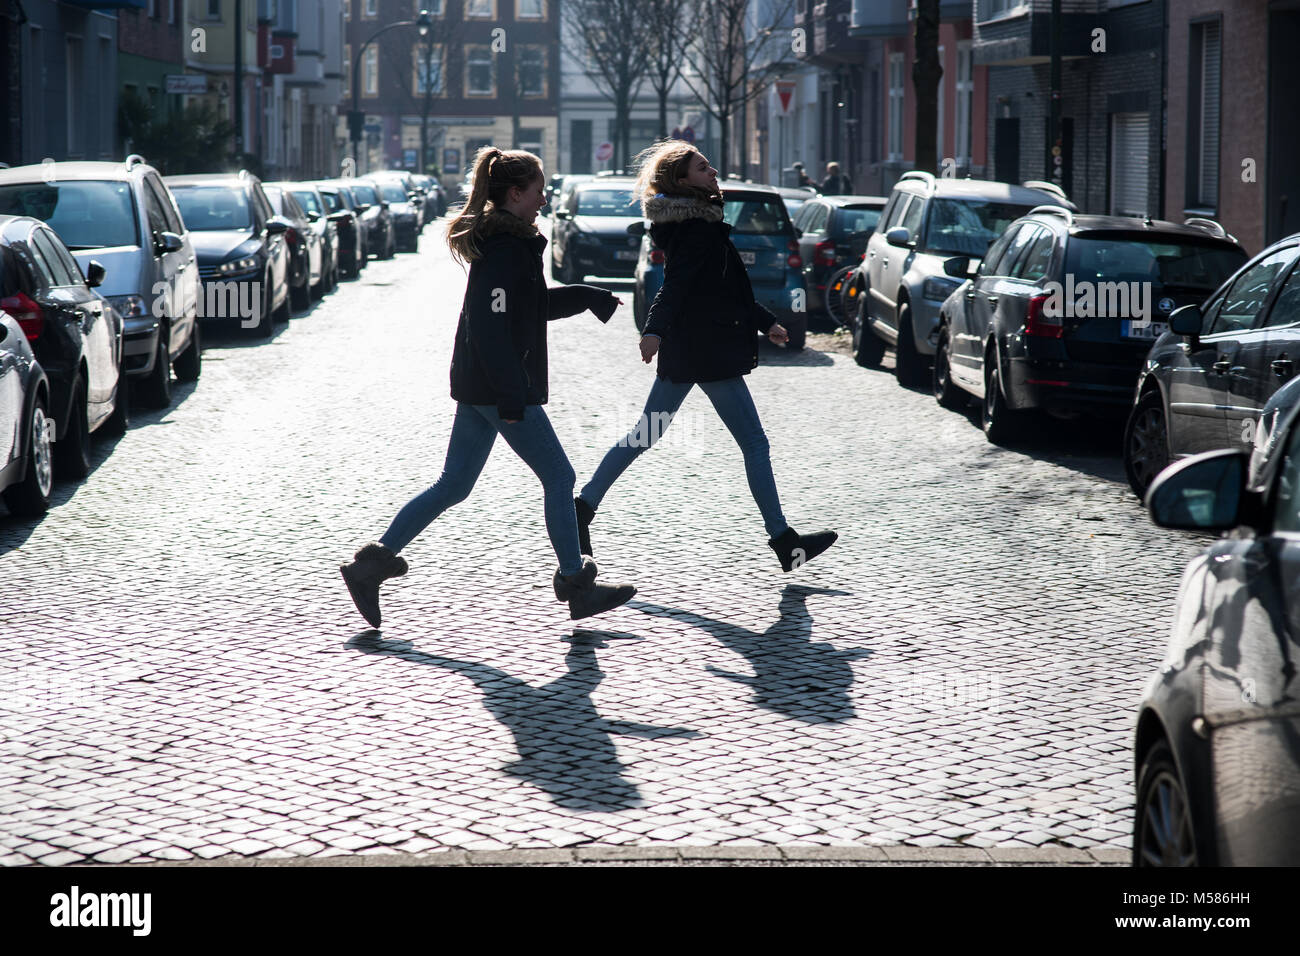 Children in the city of Düsseldorf, Germany. - Stock Image